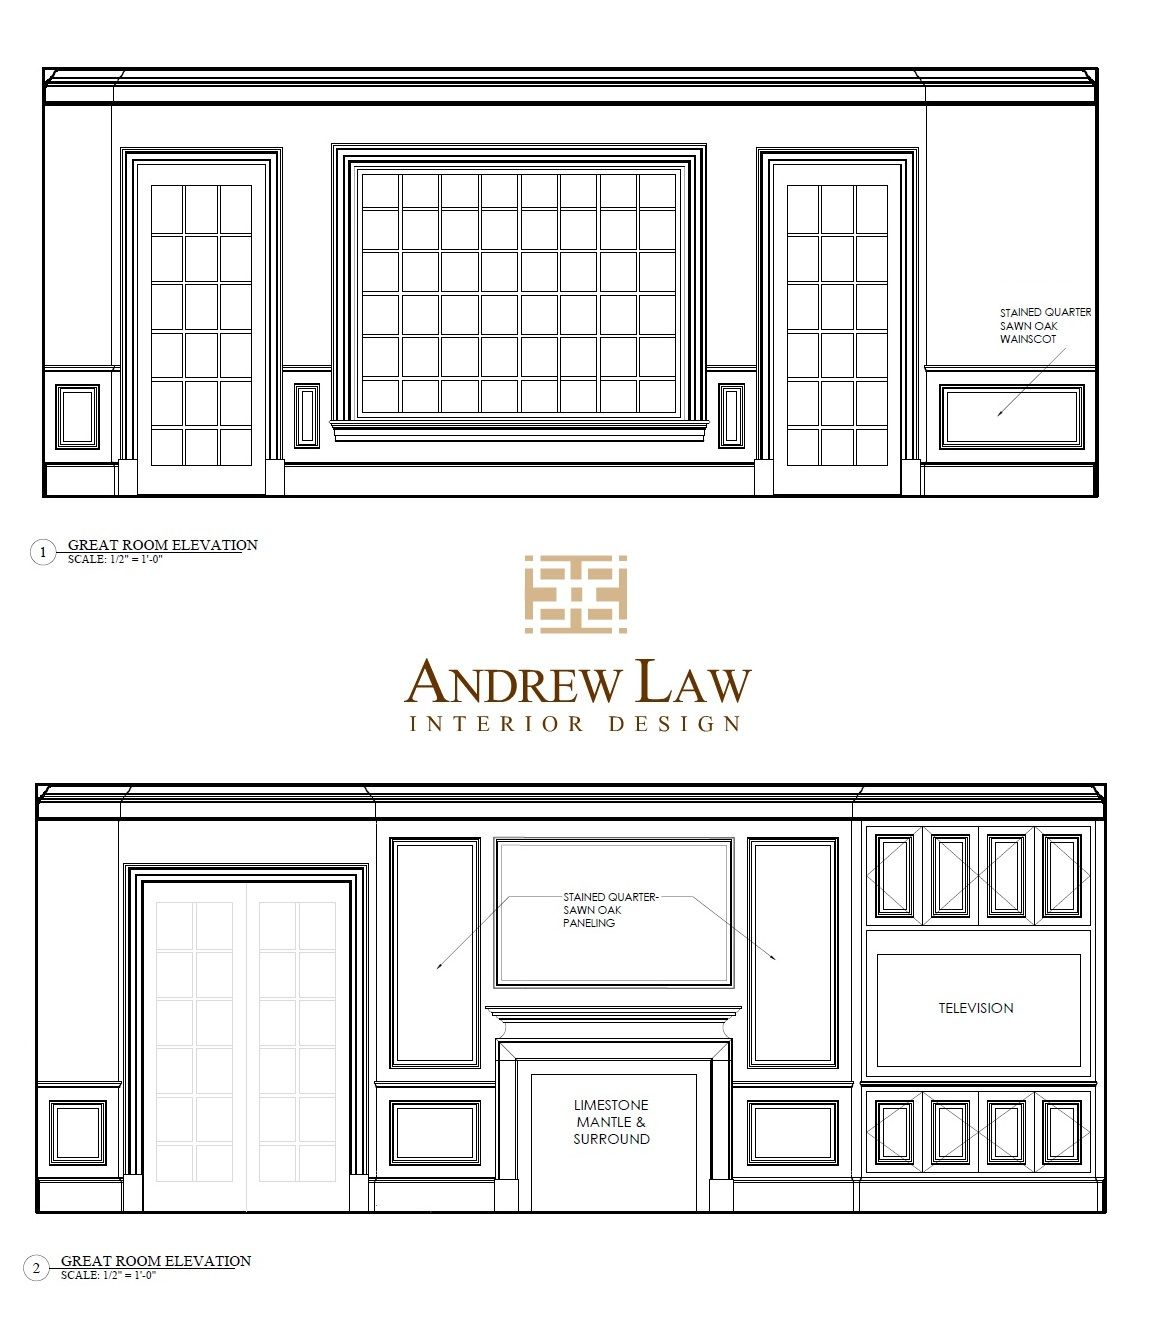 #BethesdaStyle ~ Great Room Elevations from Andrew Law Interior Design!  www.andrewlaw.